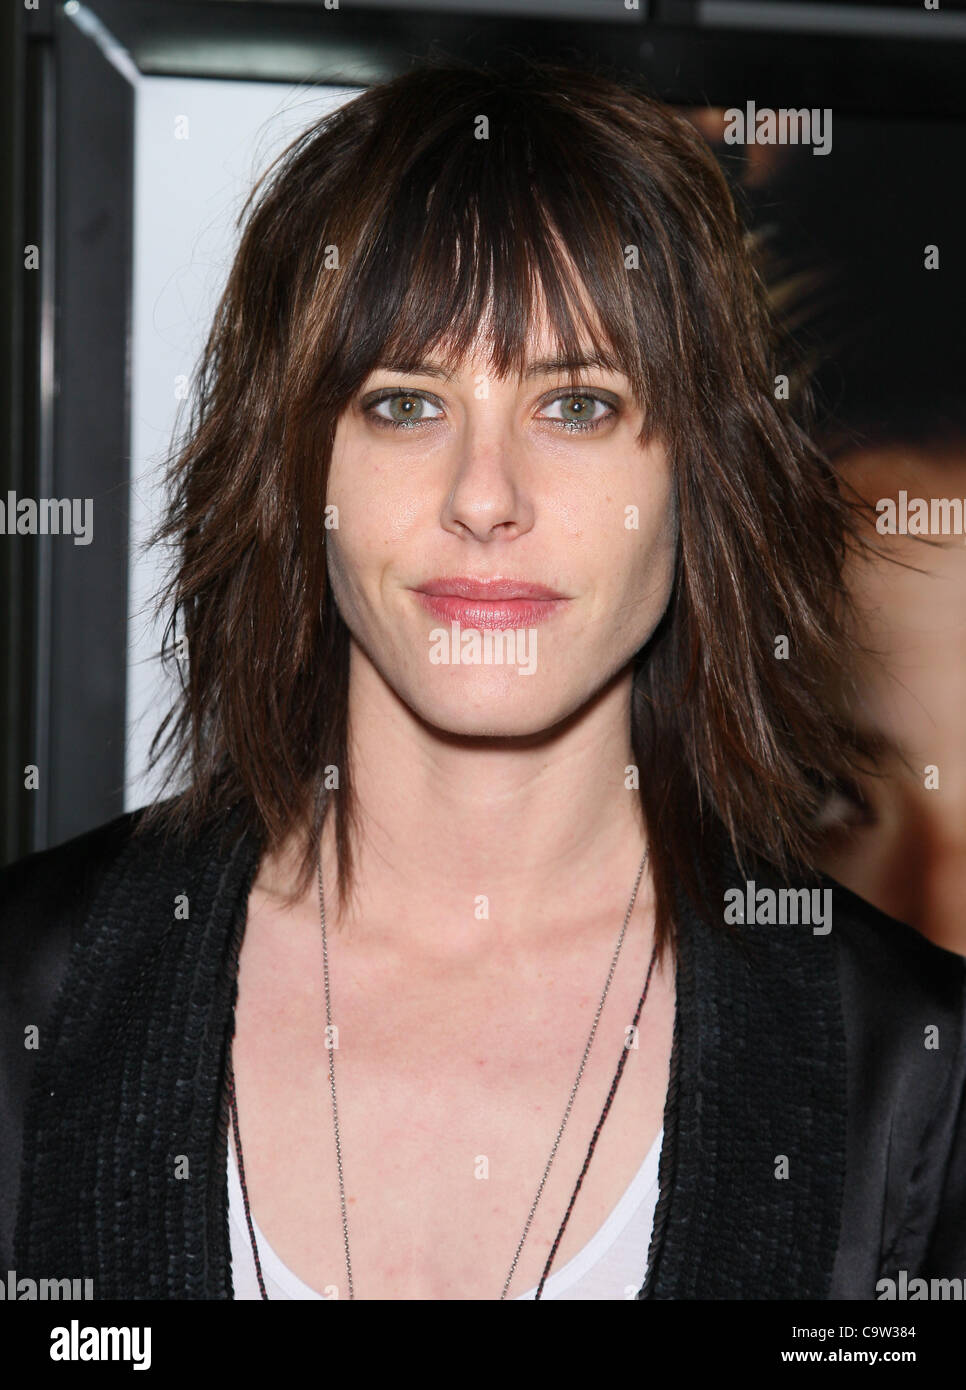 katherine moennig stock photos & katherine moennig stock images